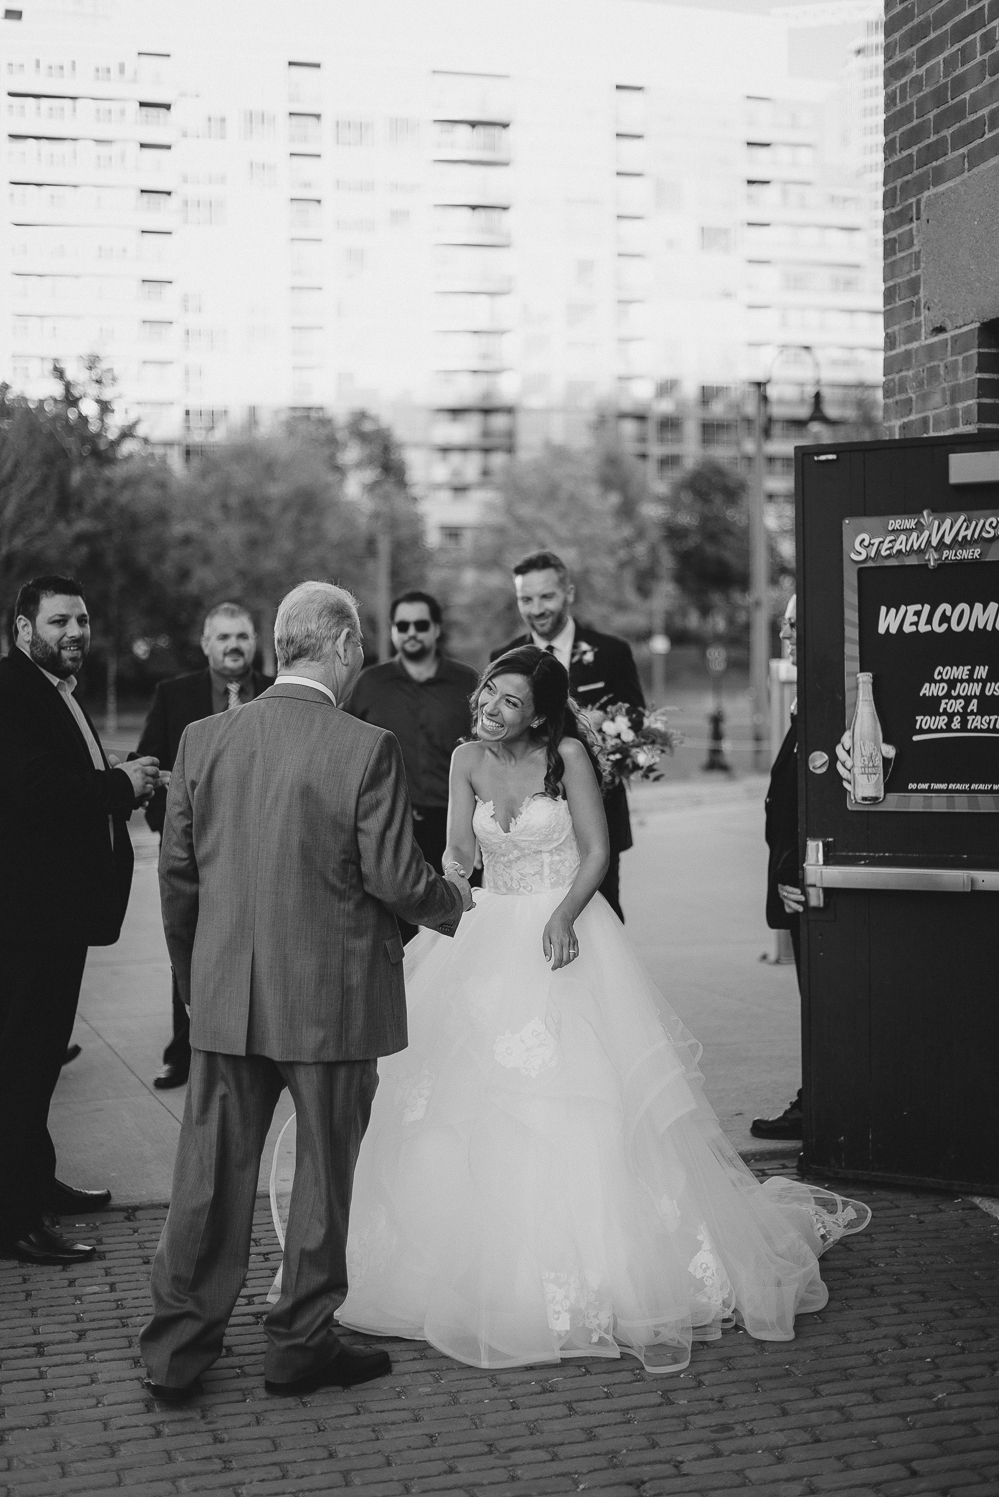 steamwhistle wedding candid photographer fall wedding